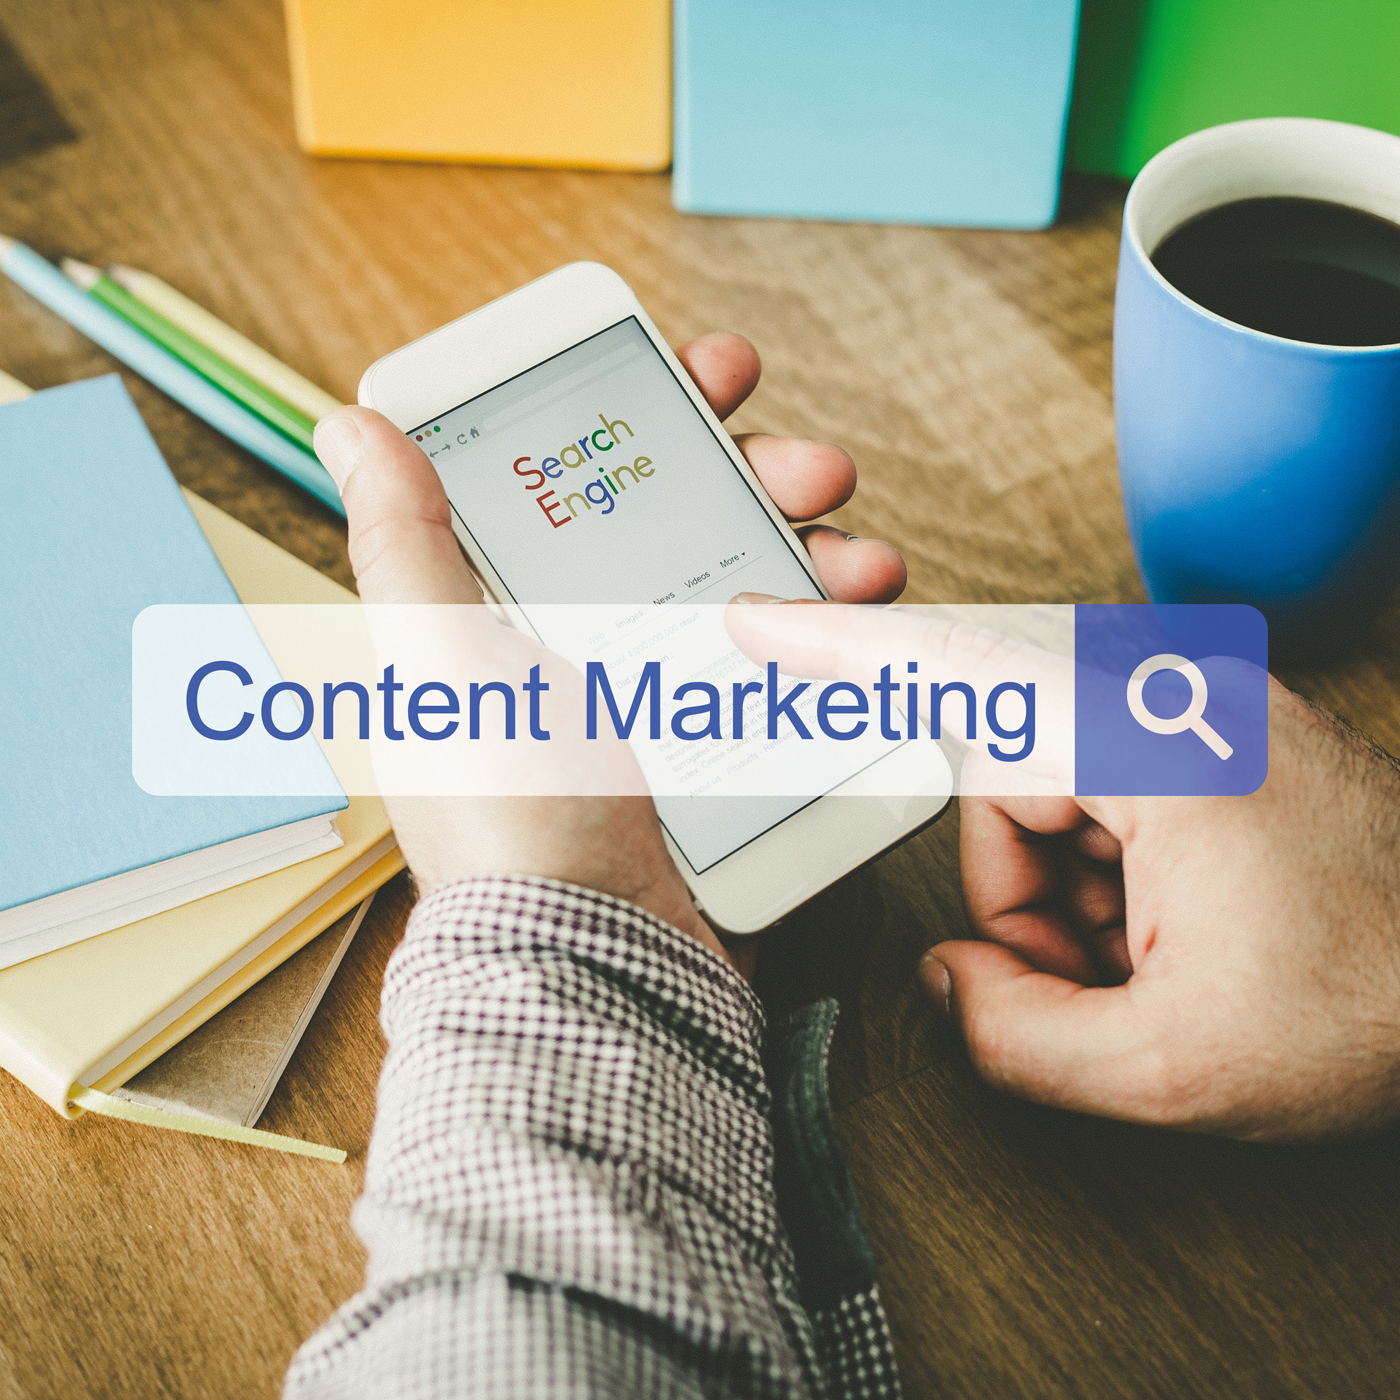 Real Estate: More Than Ever, Content Is King of Online Marketing